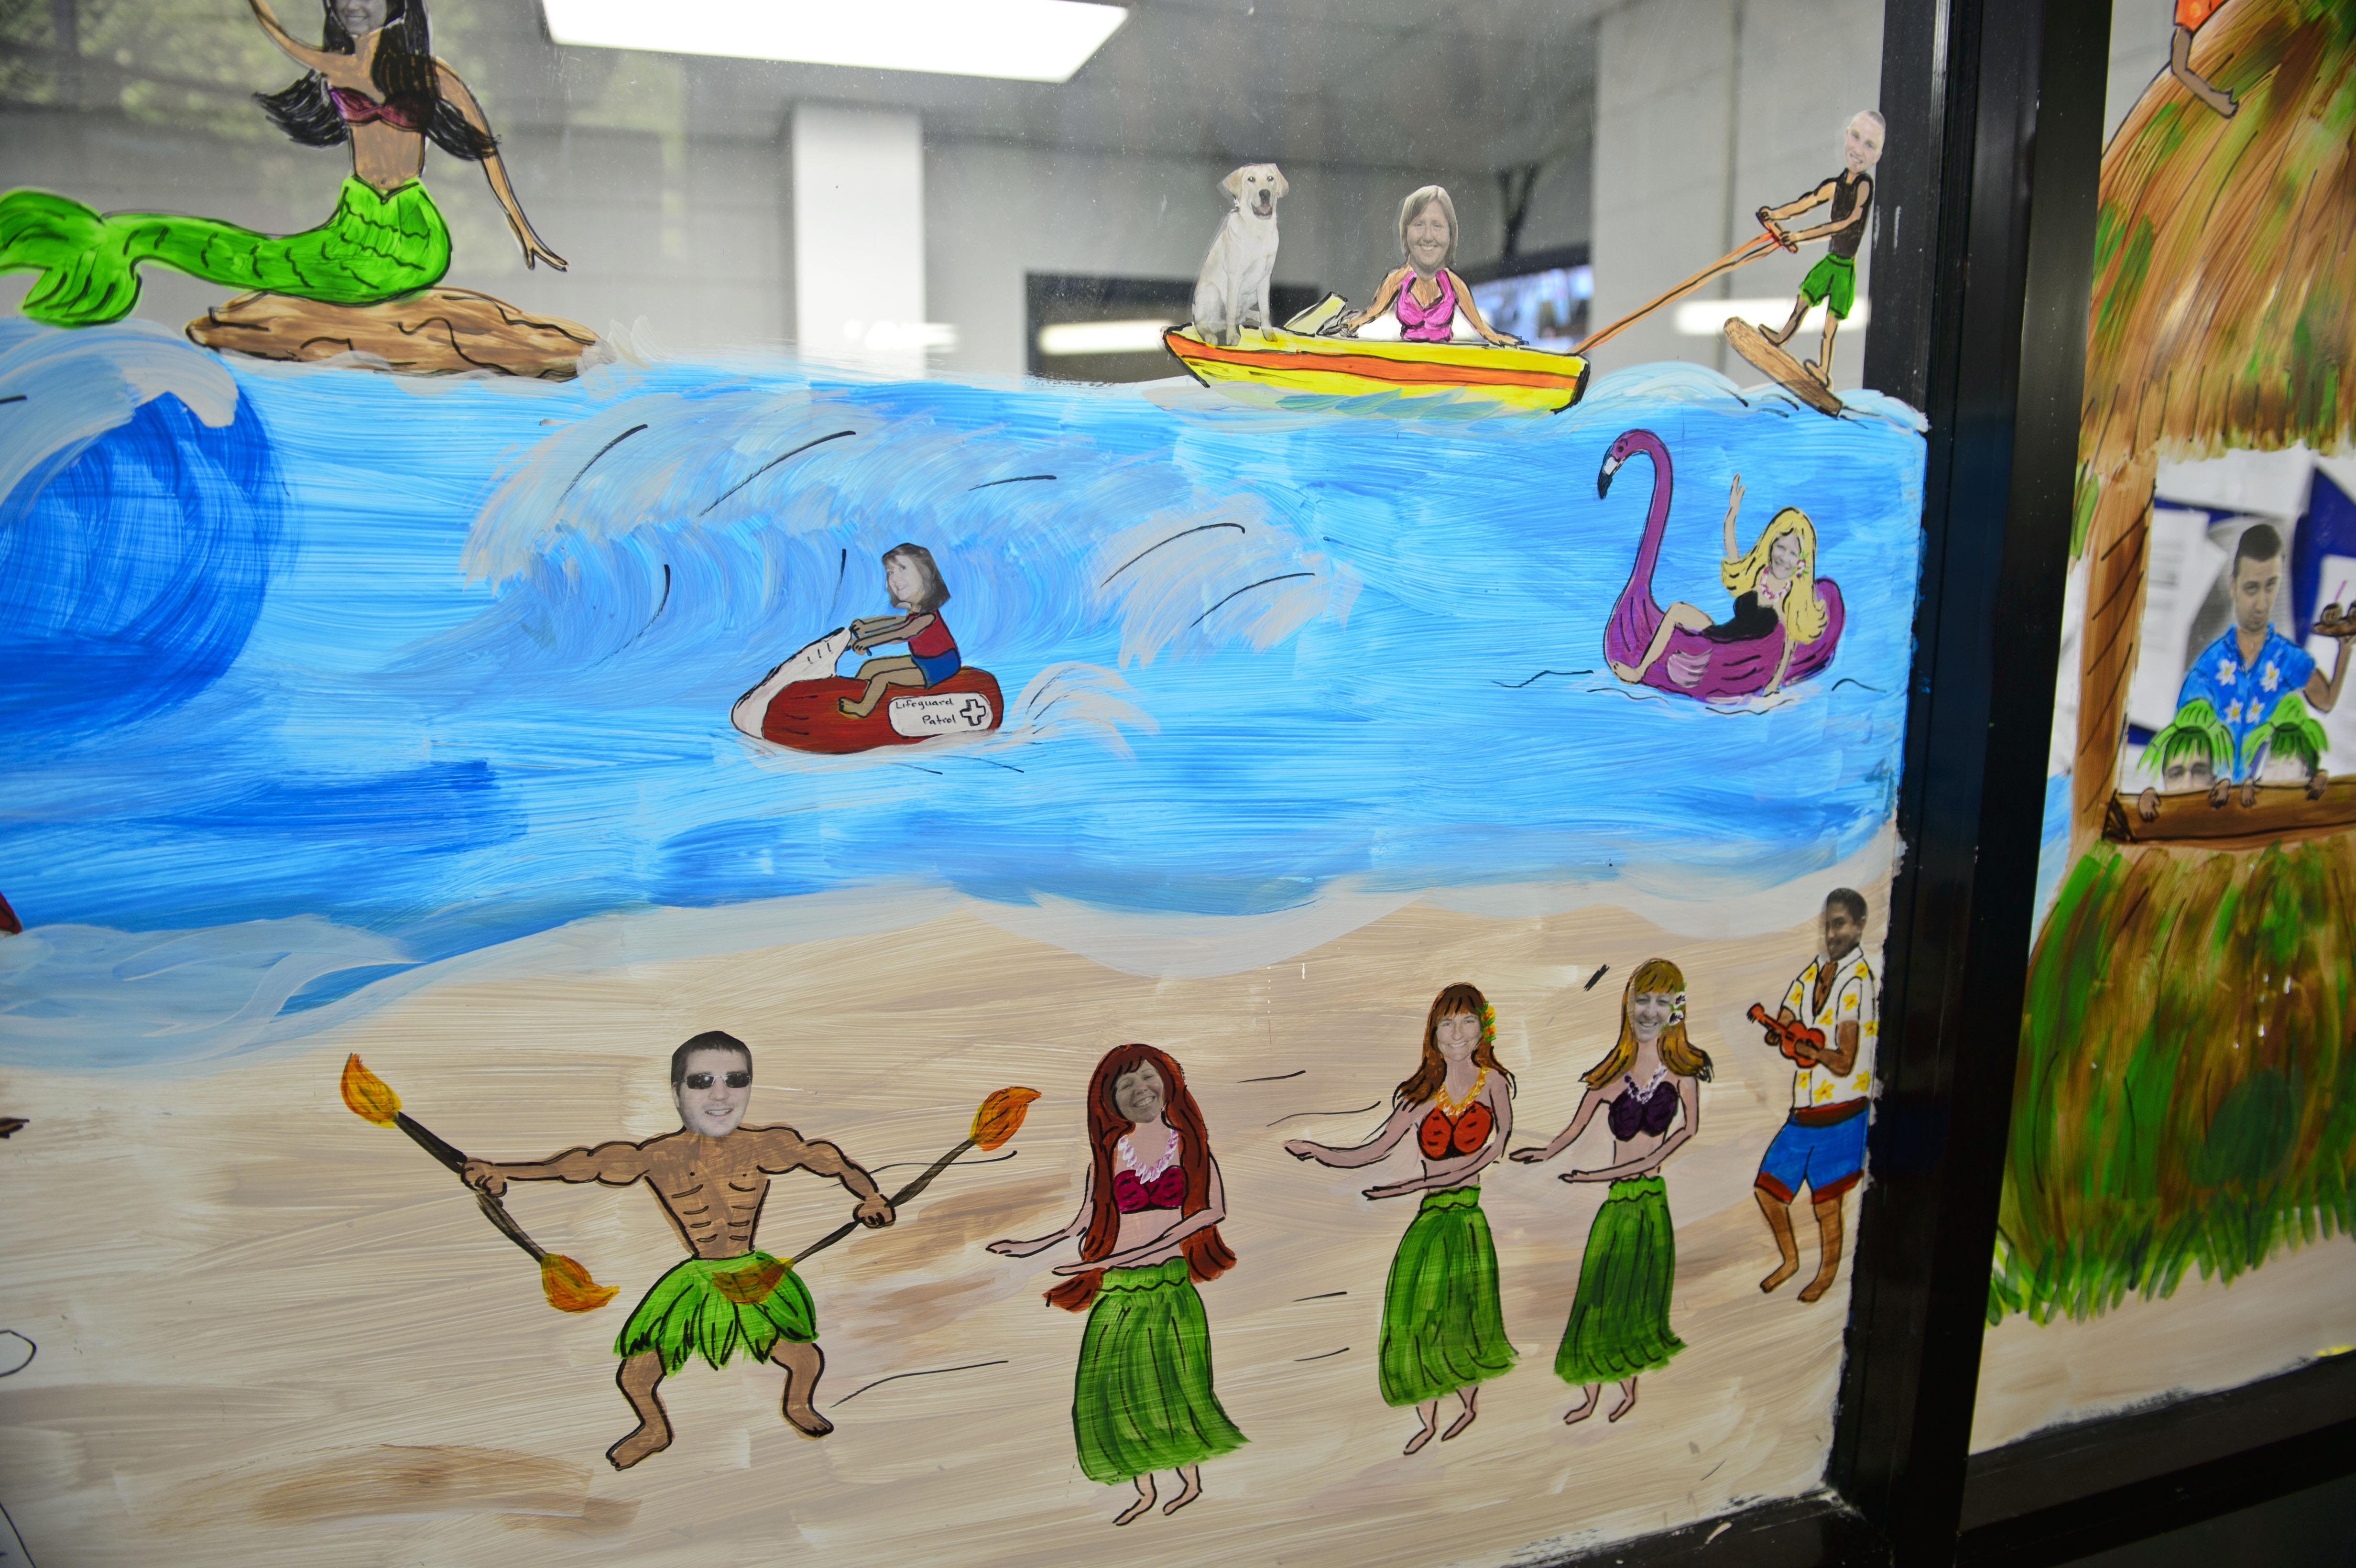 murals spread smiles at providence recenter our stories and providence staff were painted in a beach scene for colon s summer mural